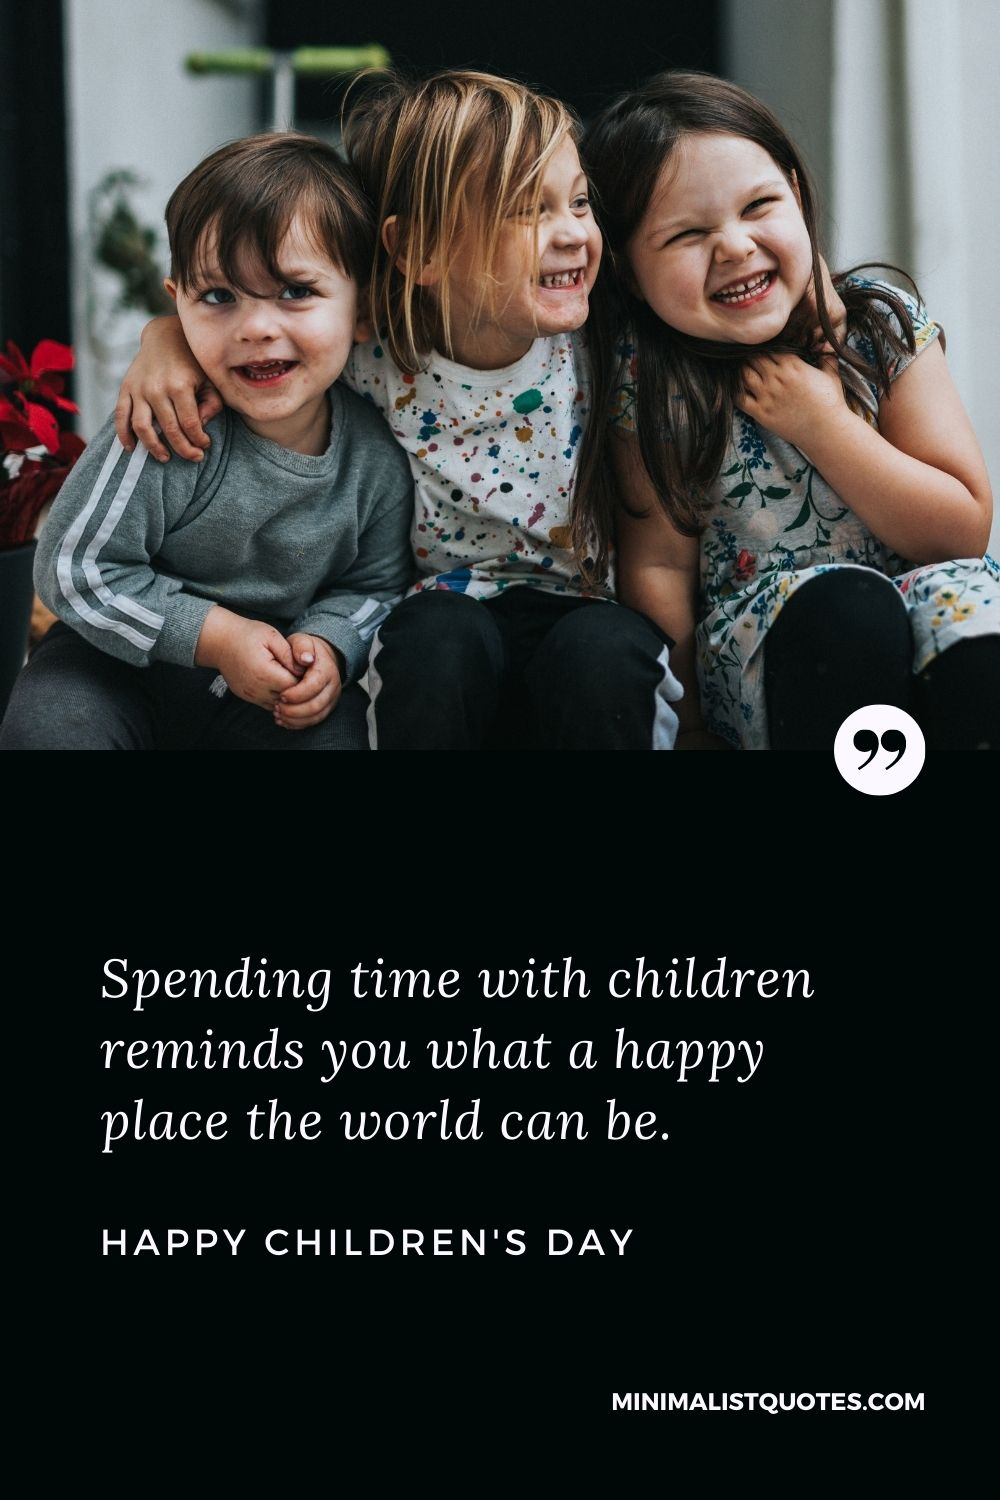 Children's Day Wish & Message With HD Image: Spending time with children reminds you what a happy place the world can be. Happy Children's Day